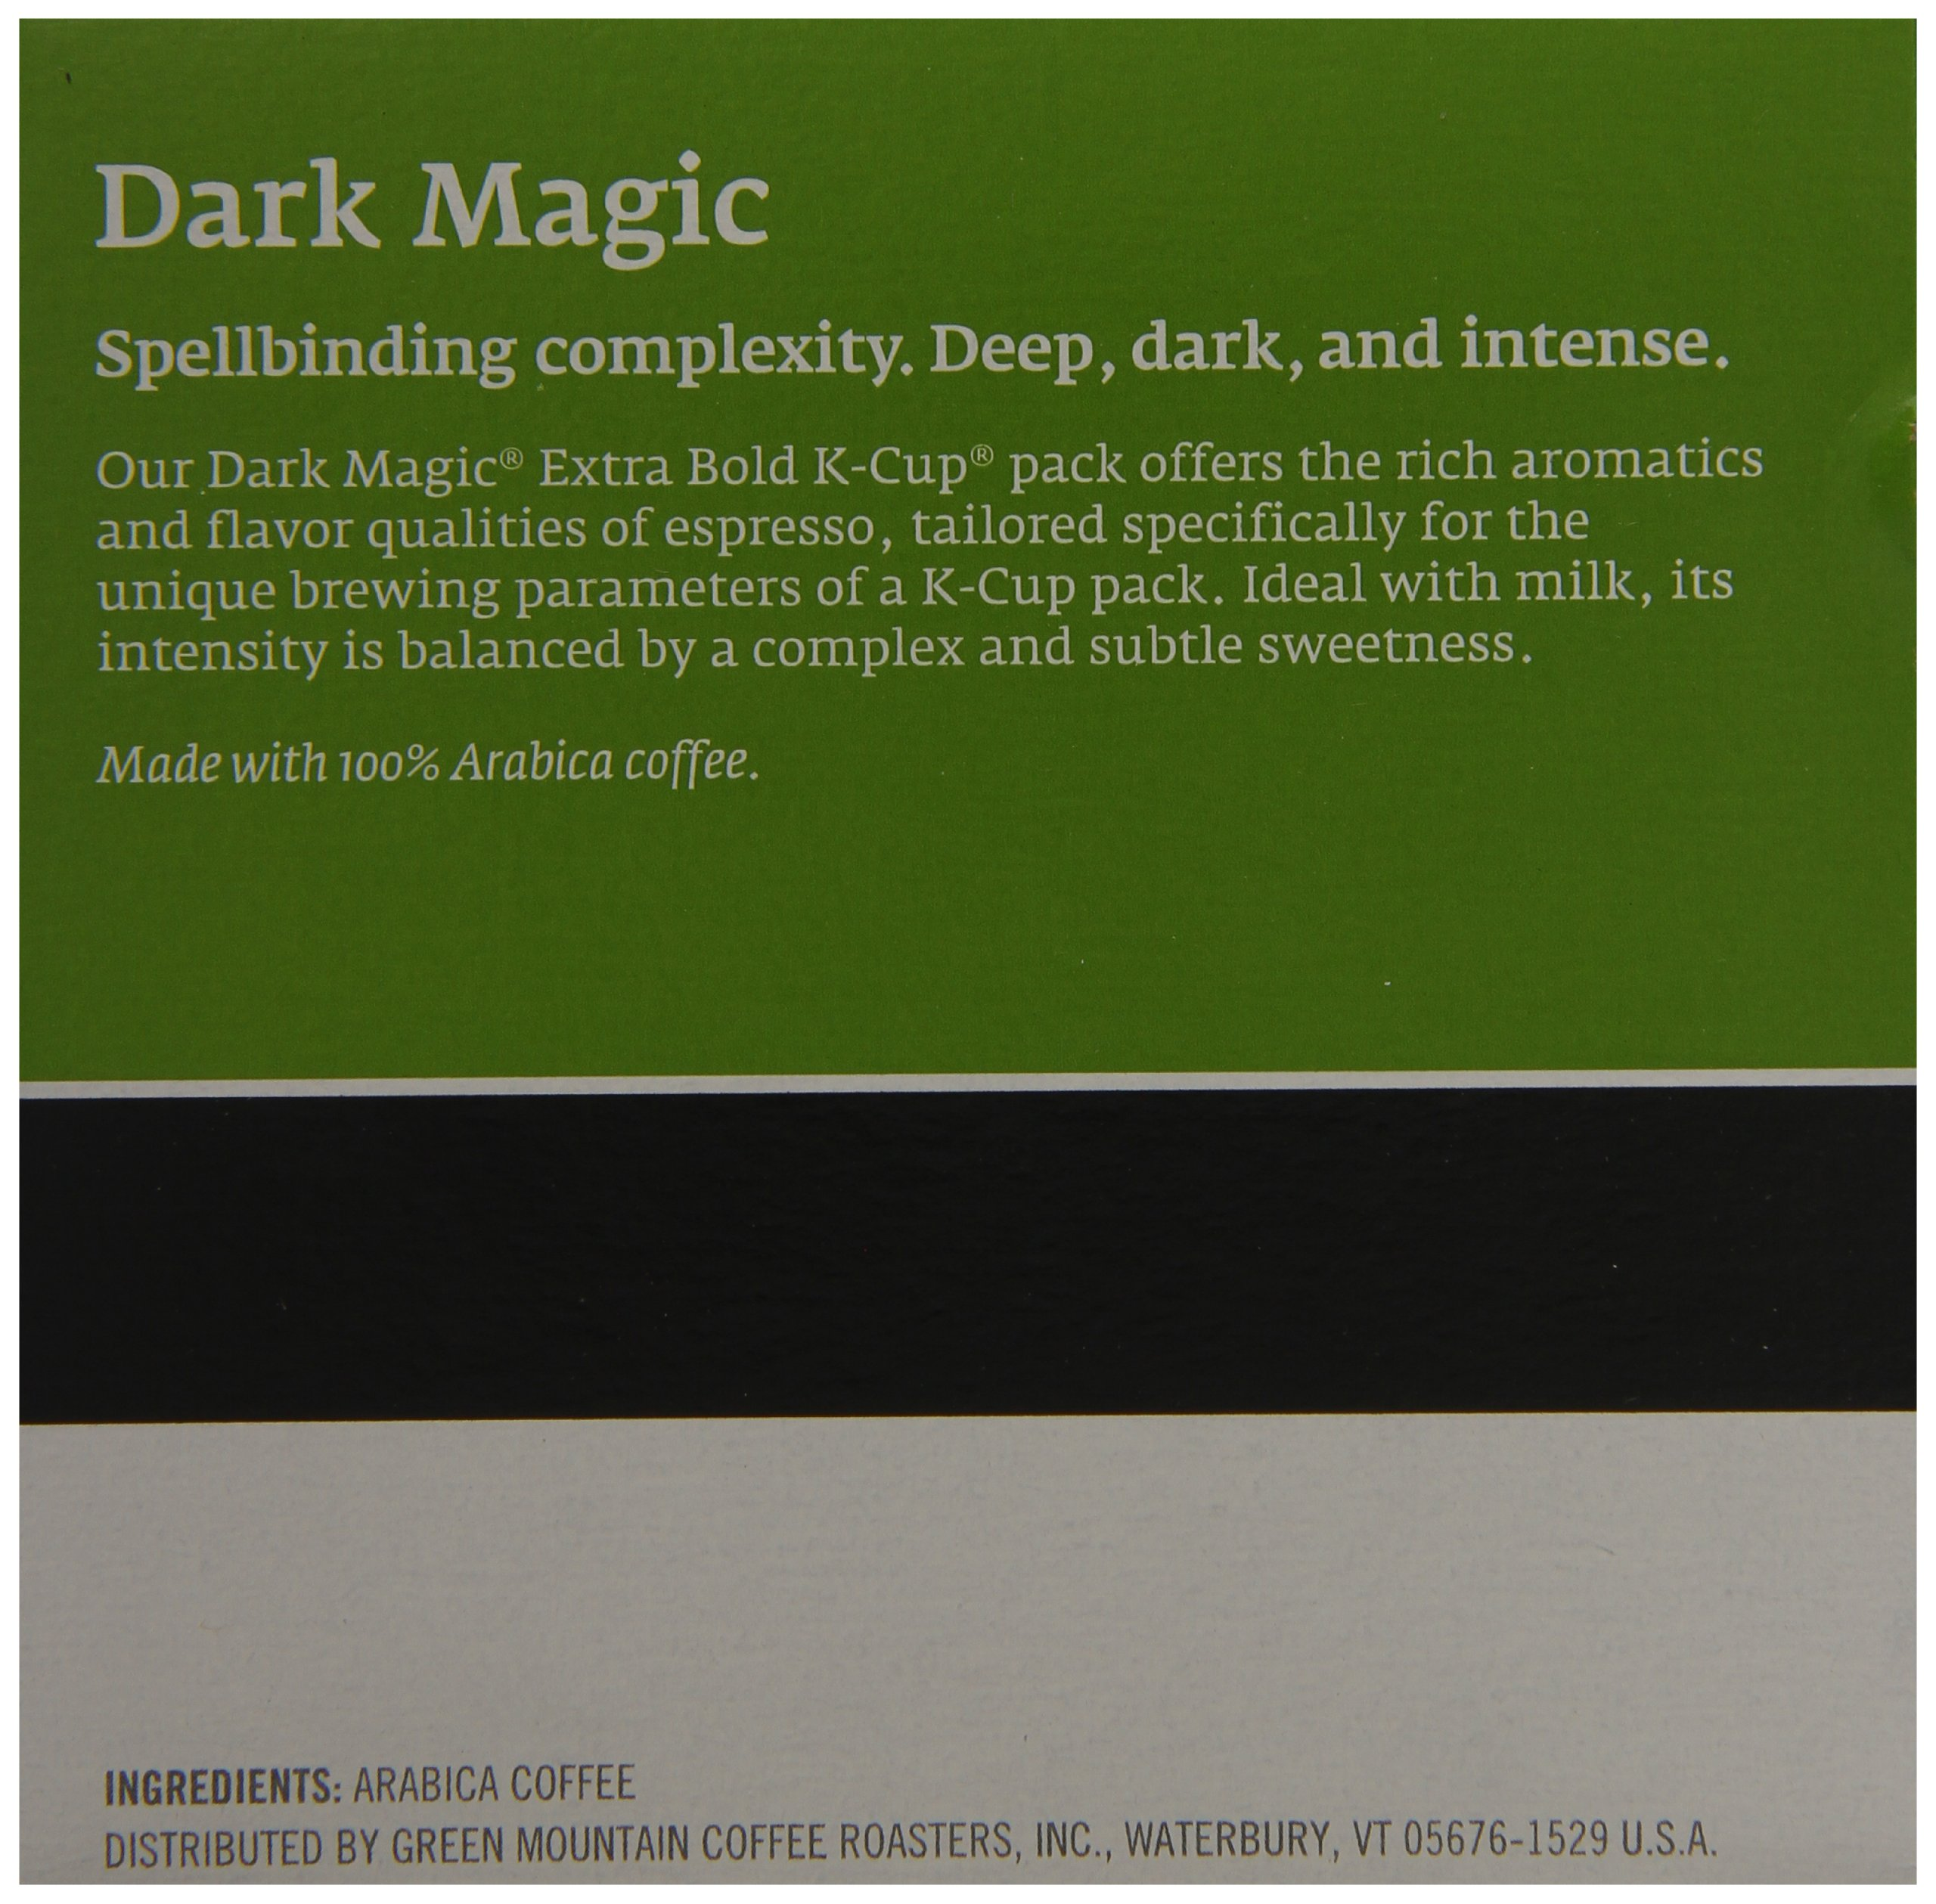 Green Mountain Coffee, Dark Magic (Extra Bold), 12-Count K-Cup Portion Pack for Keurig Brewers (Pack of 3) by GREEN MOUNTAIN COFFEE ROASTERS (Image #4)